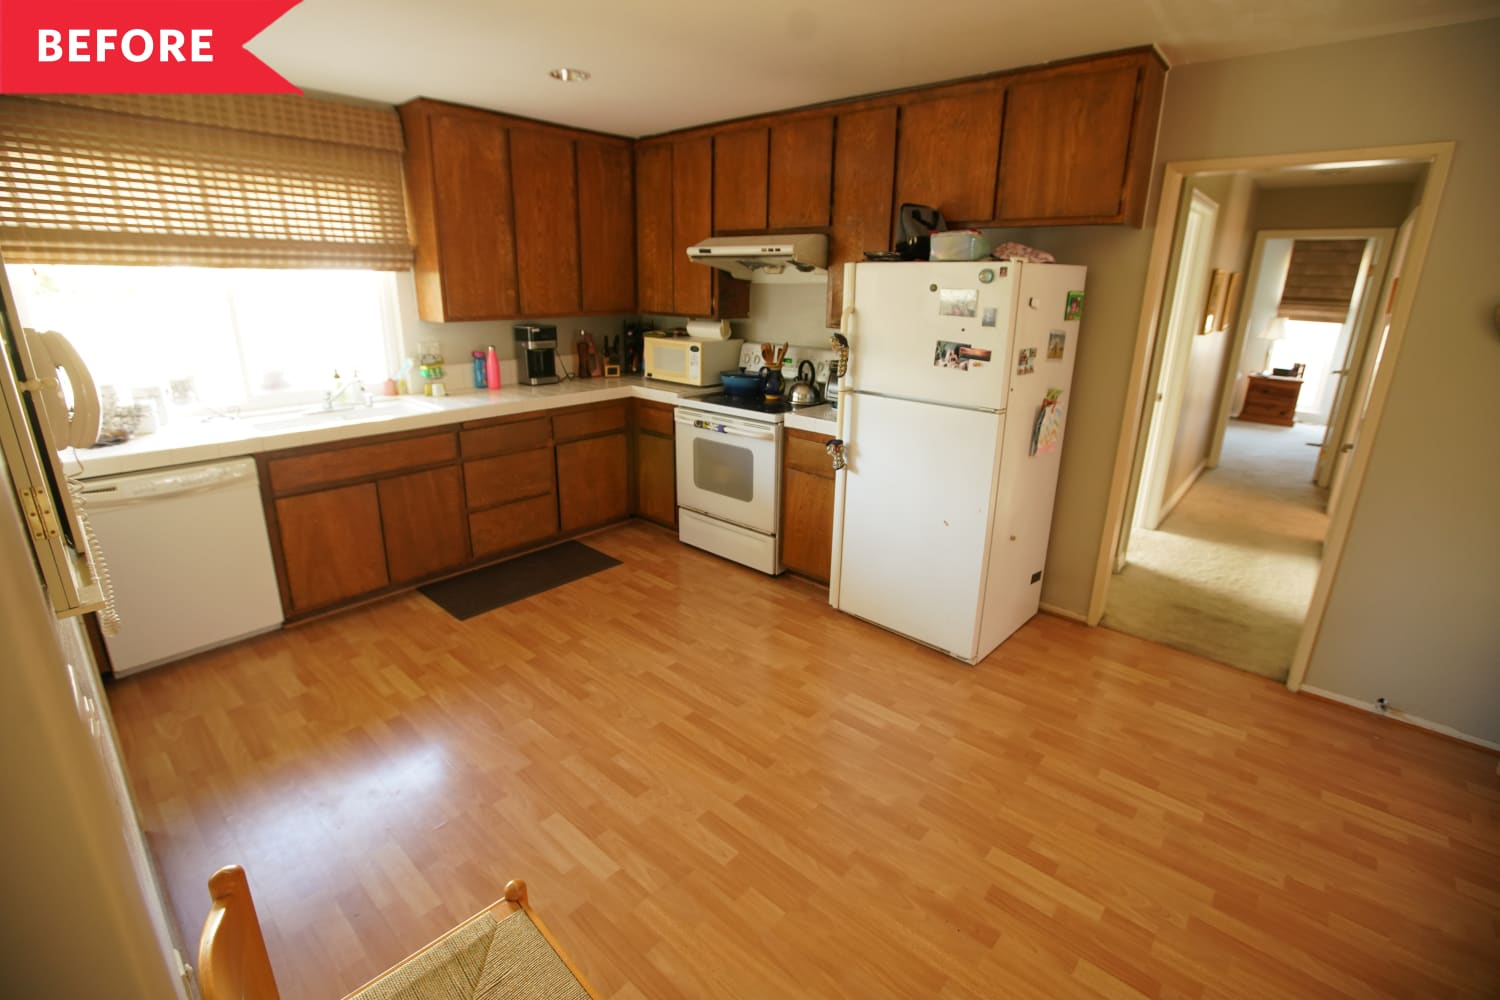 Before and After: The Property Brothers Gave This Tired 1970s Kitchen a Major Facelift